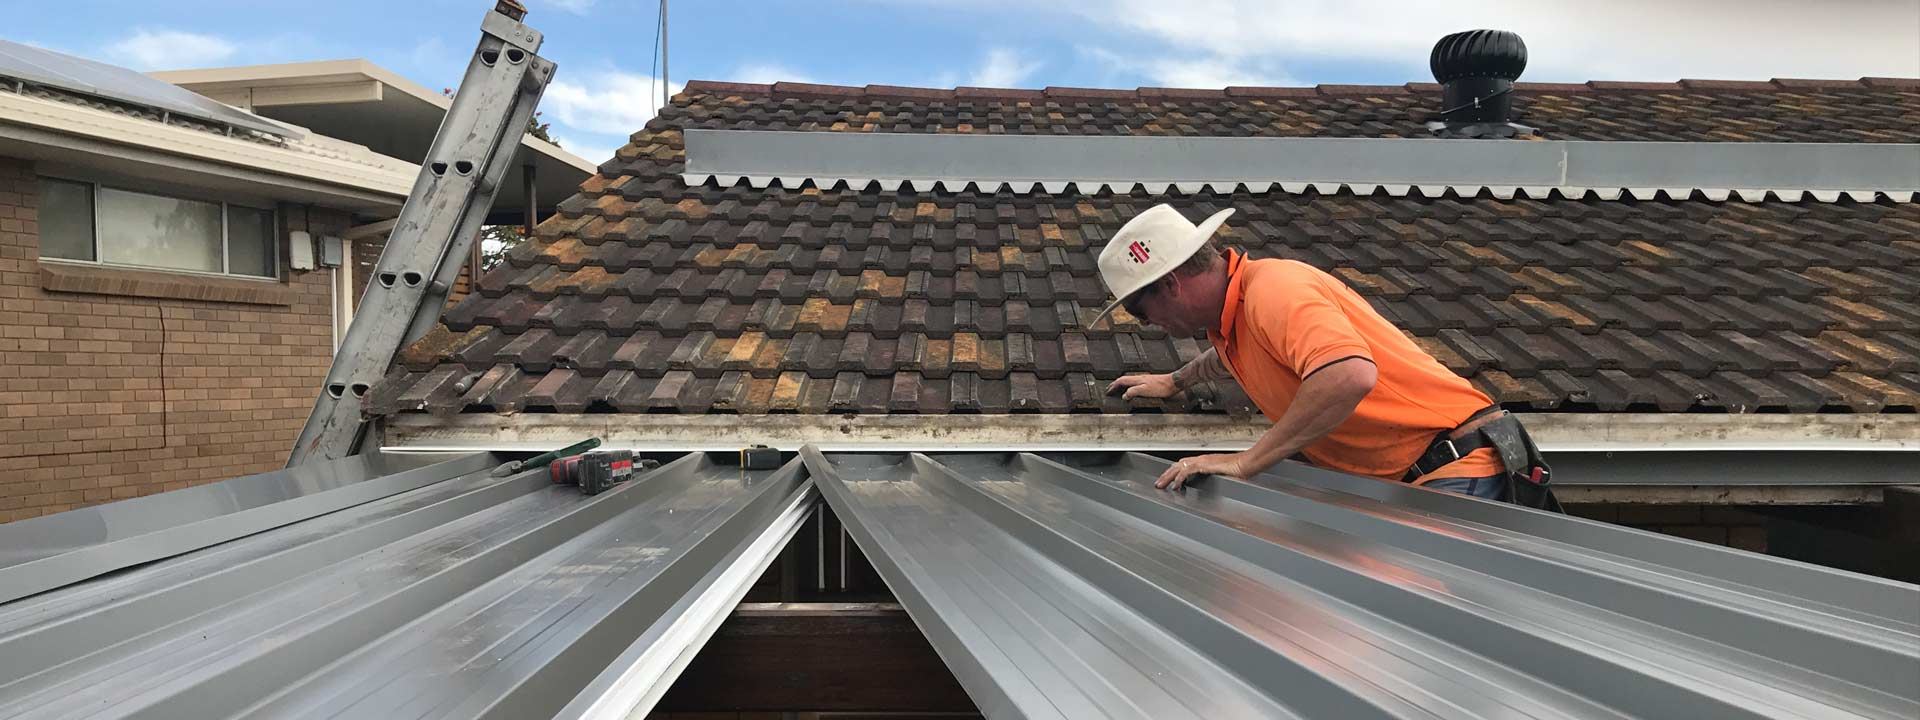 Brisbane Roofing And Guttering Service Get A Free Quote Now